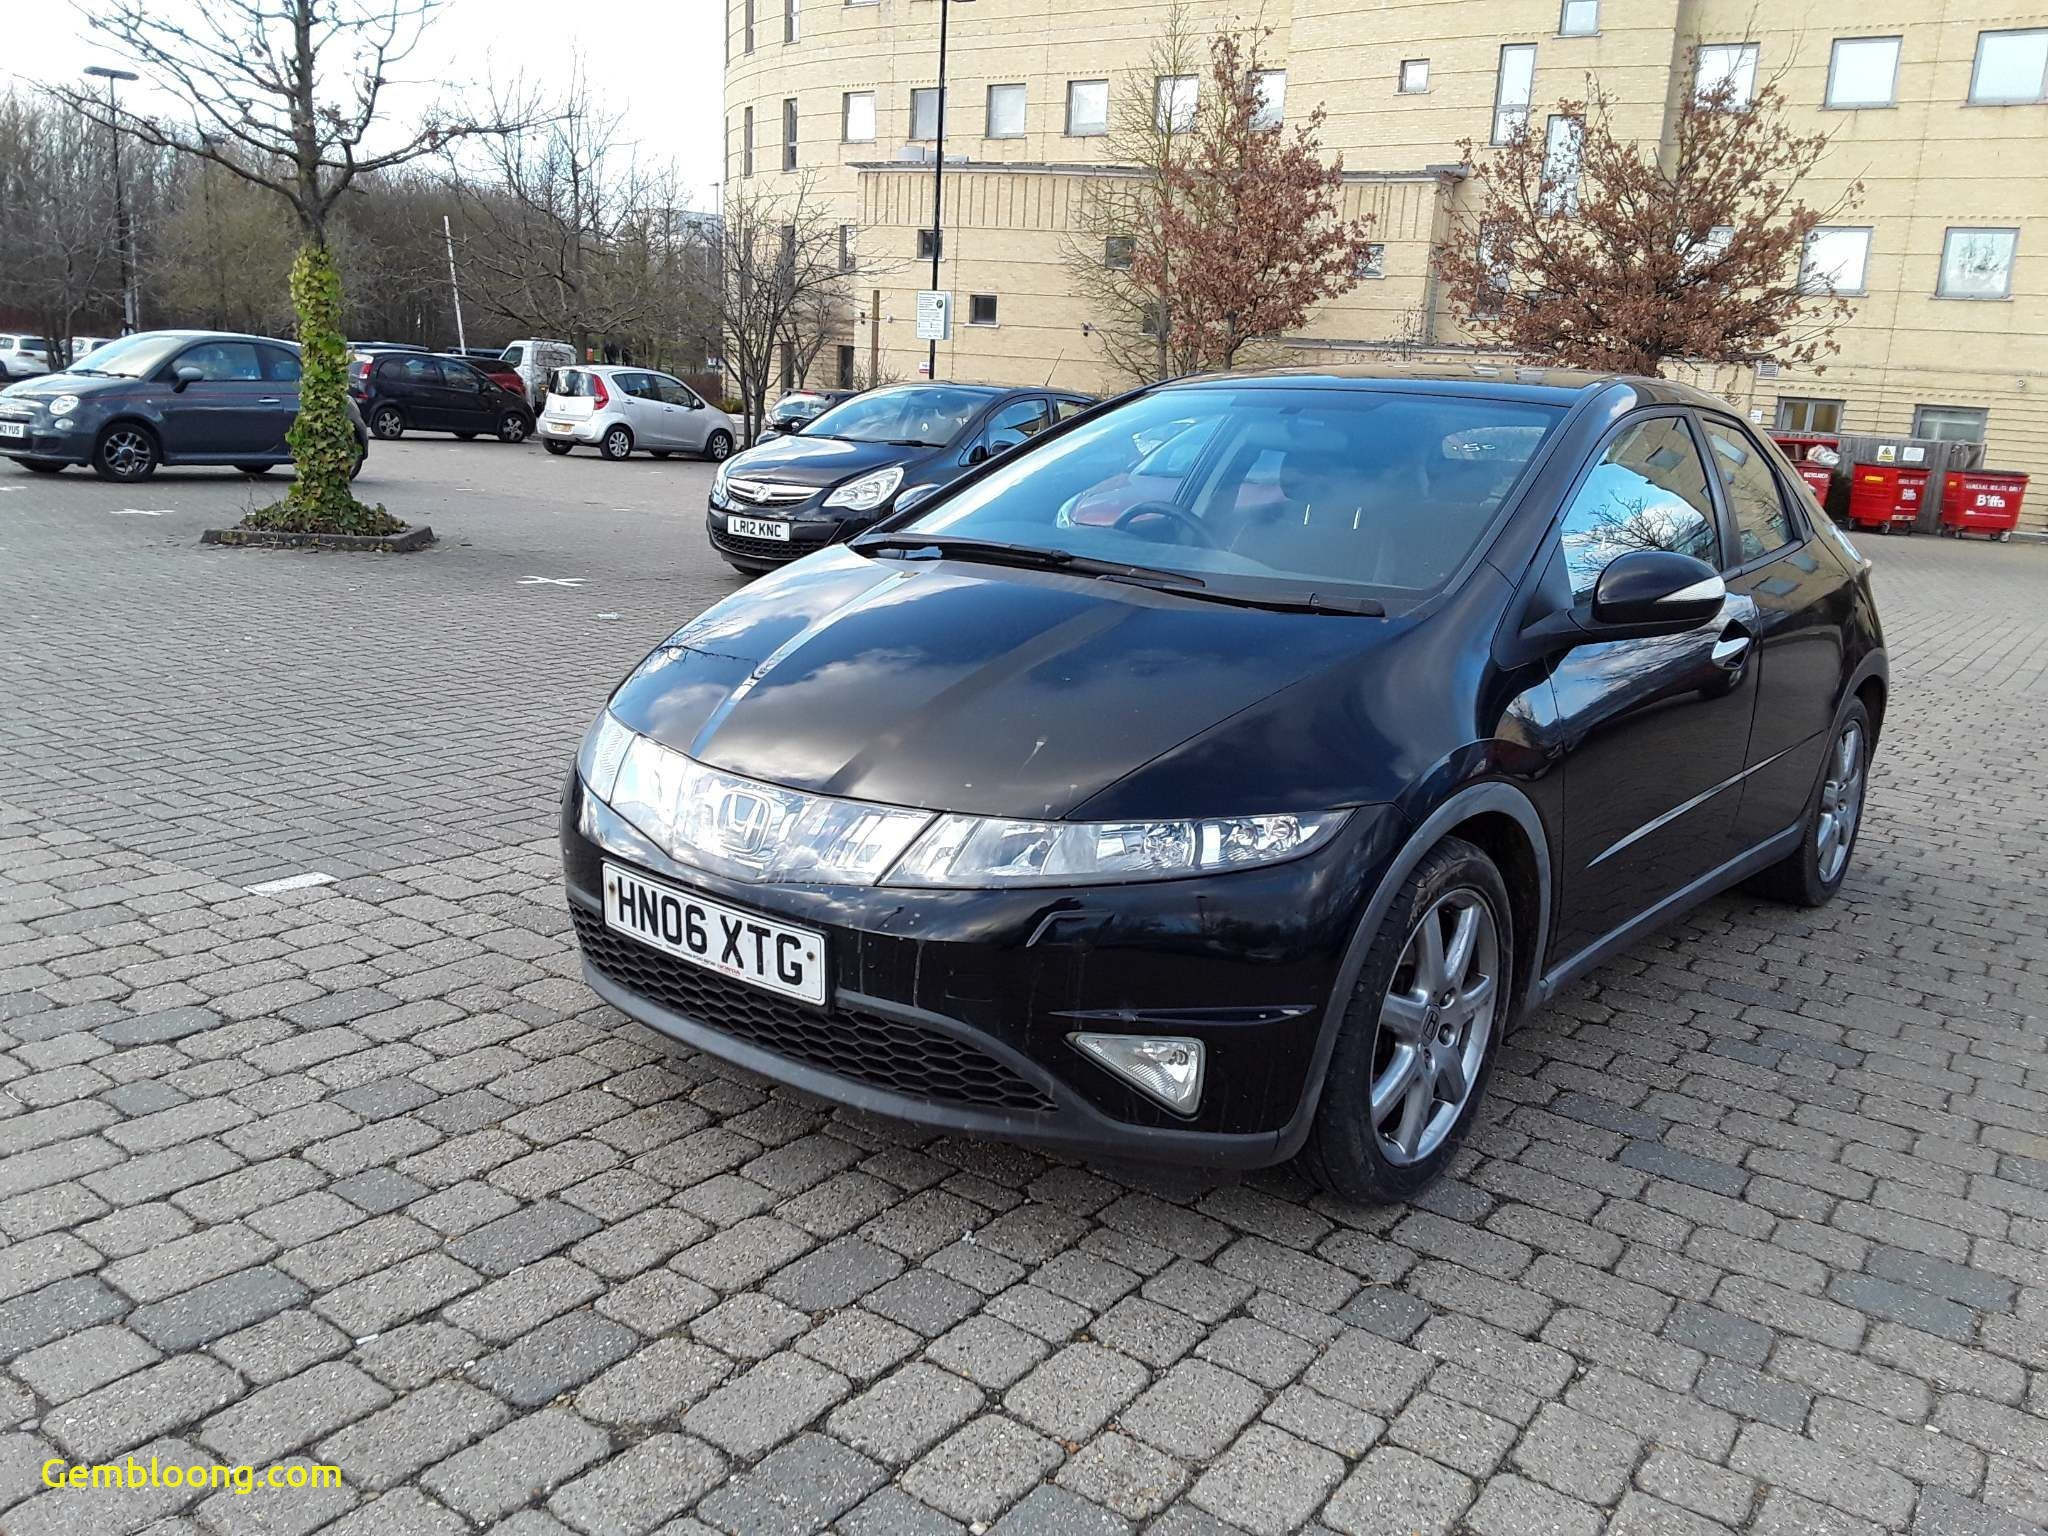 Cars for Sale Near Me Under 4000 Beautiful Cheap Cars Under £3 000 for Sale On Auto Trader Uk